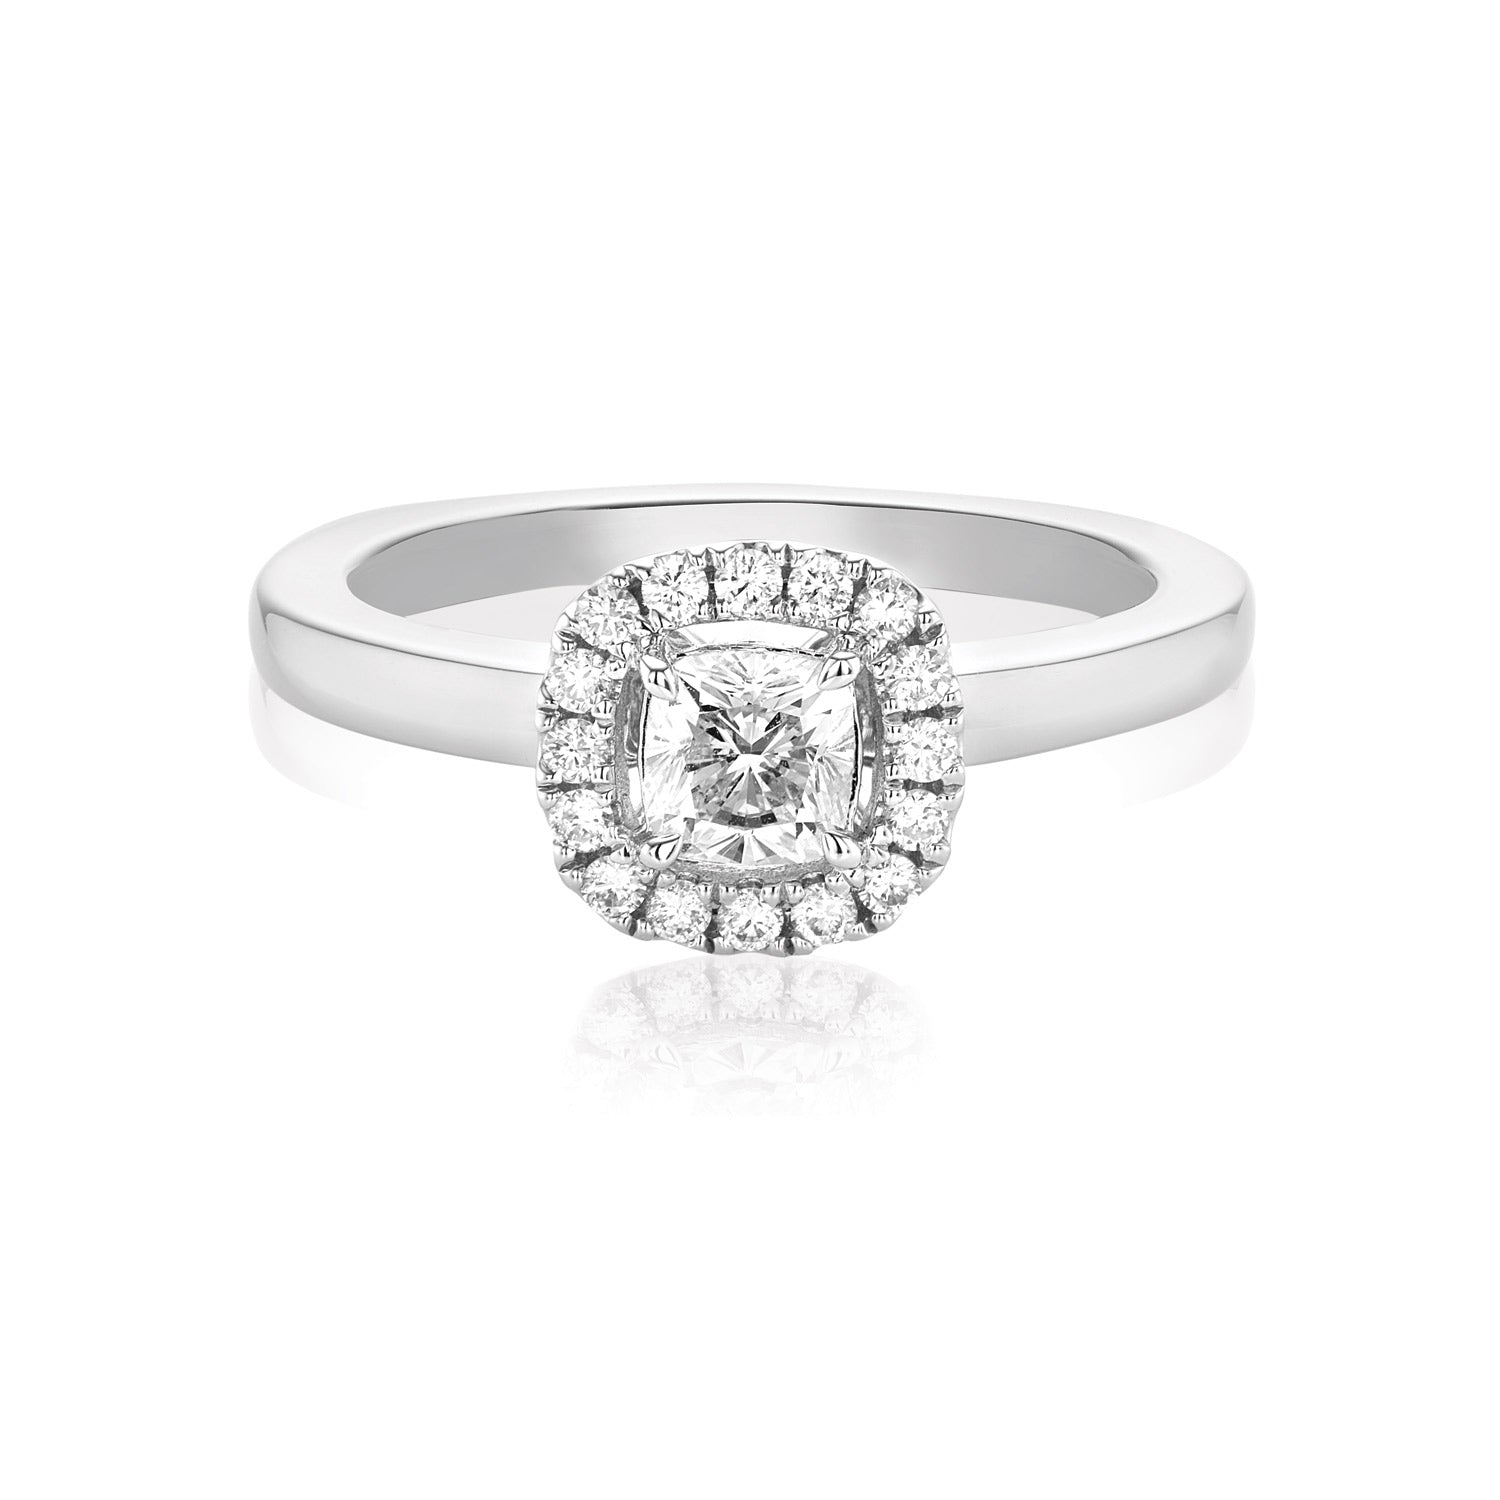 Rand 18ct White Gold Cushion Cut with 0.60 CARAT tw of Diamonds